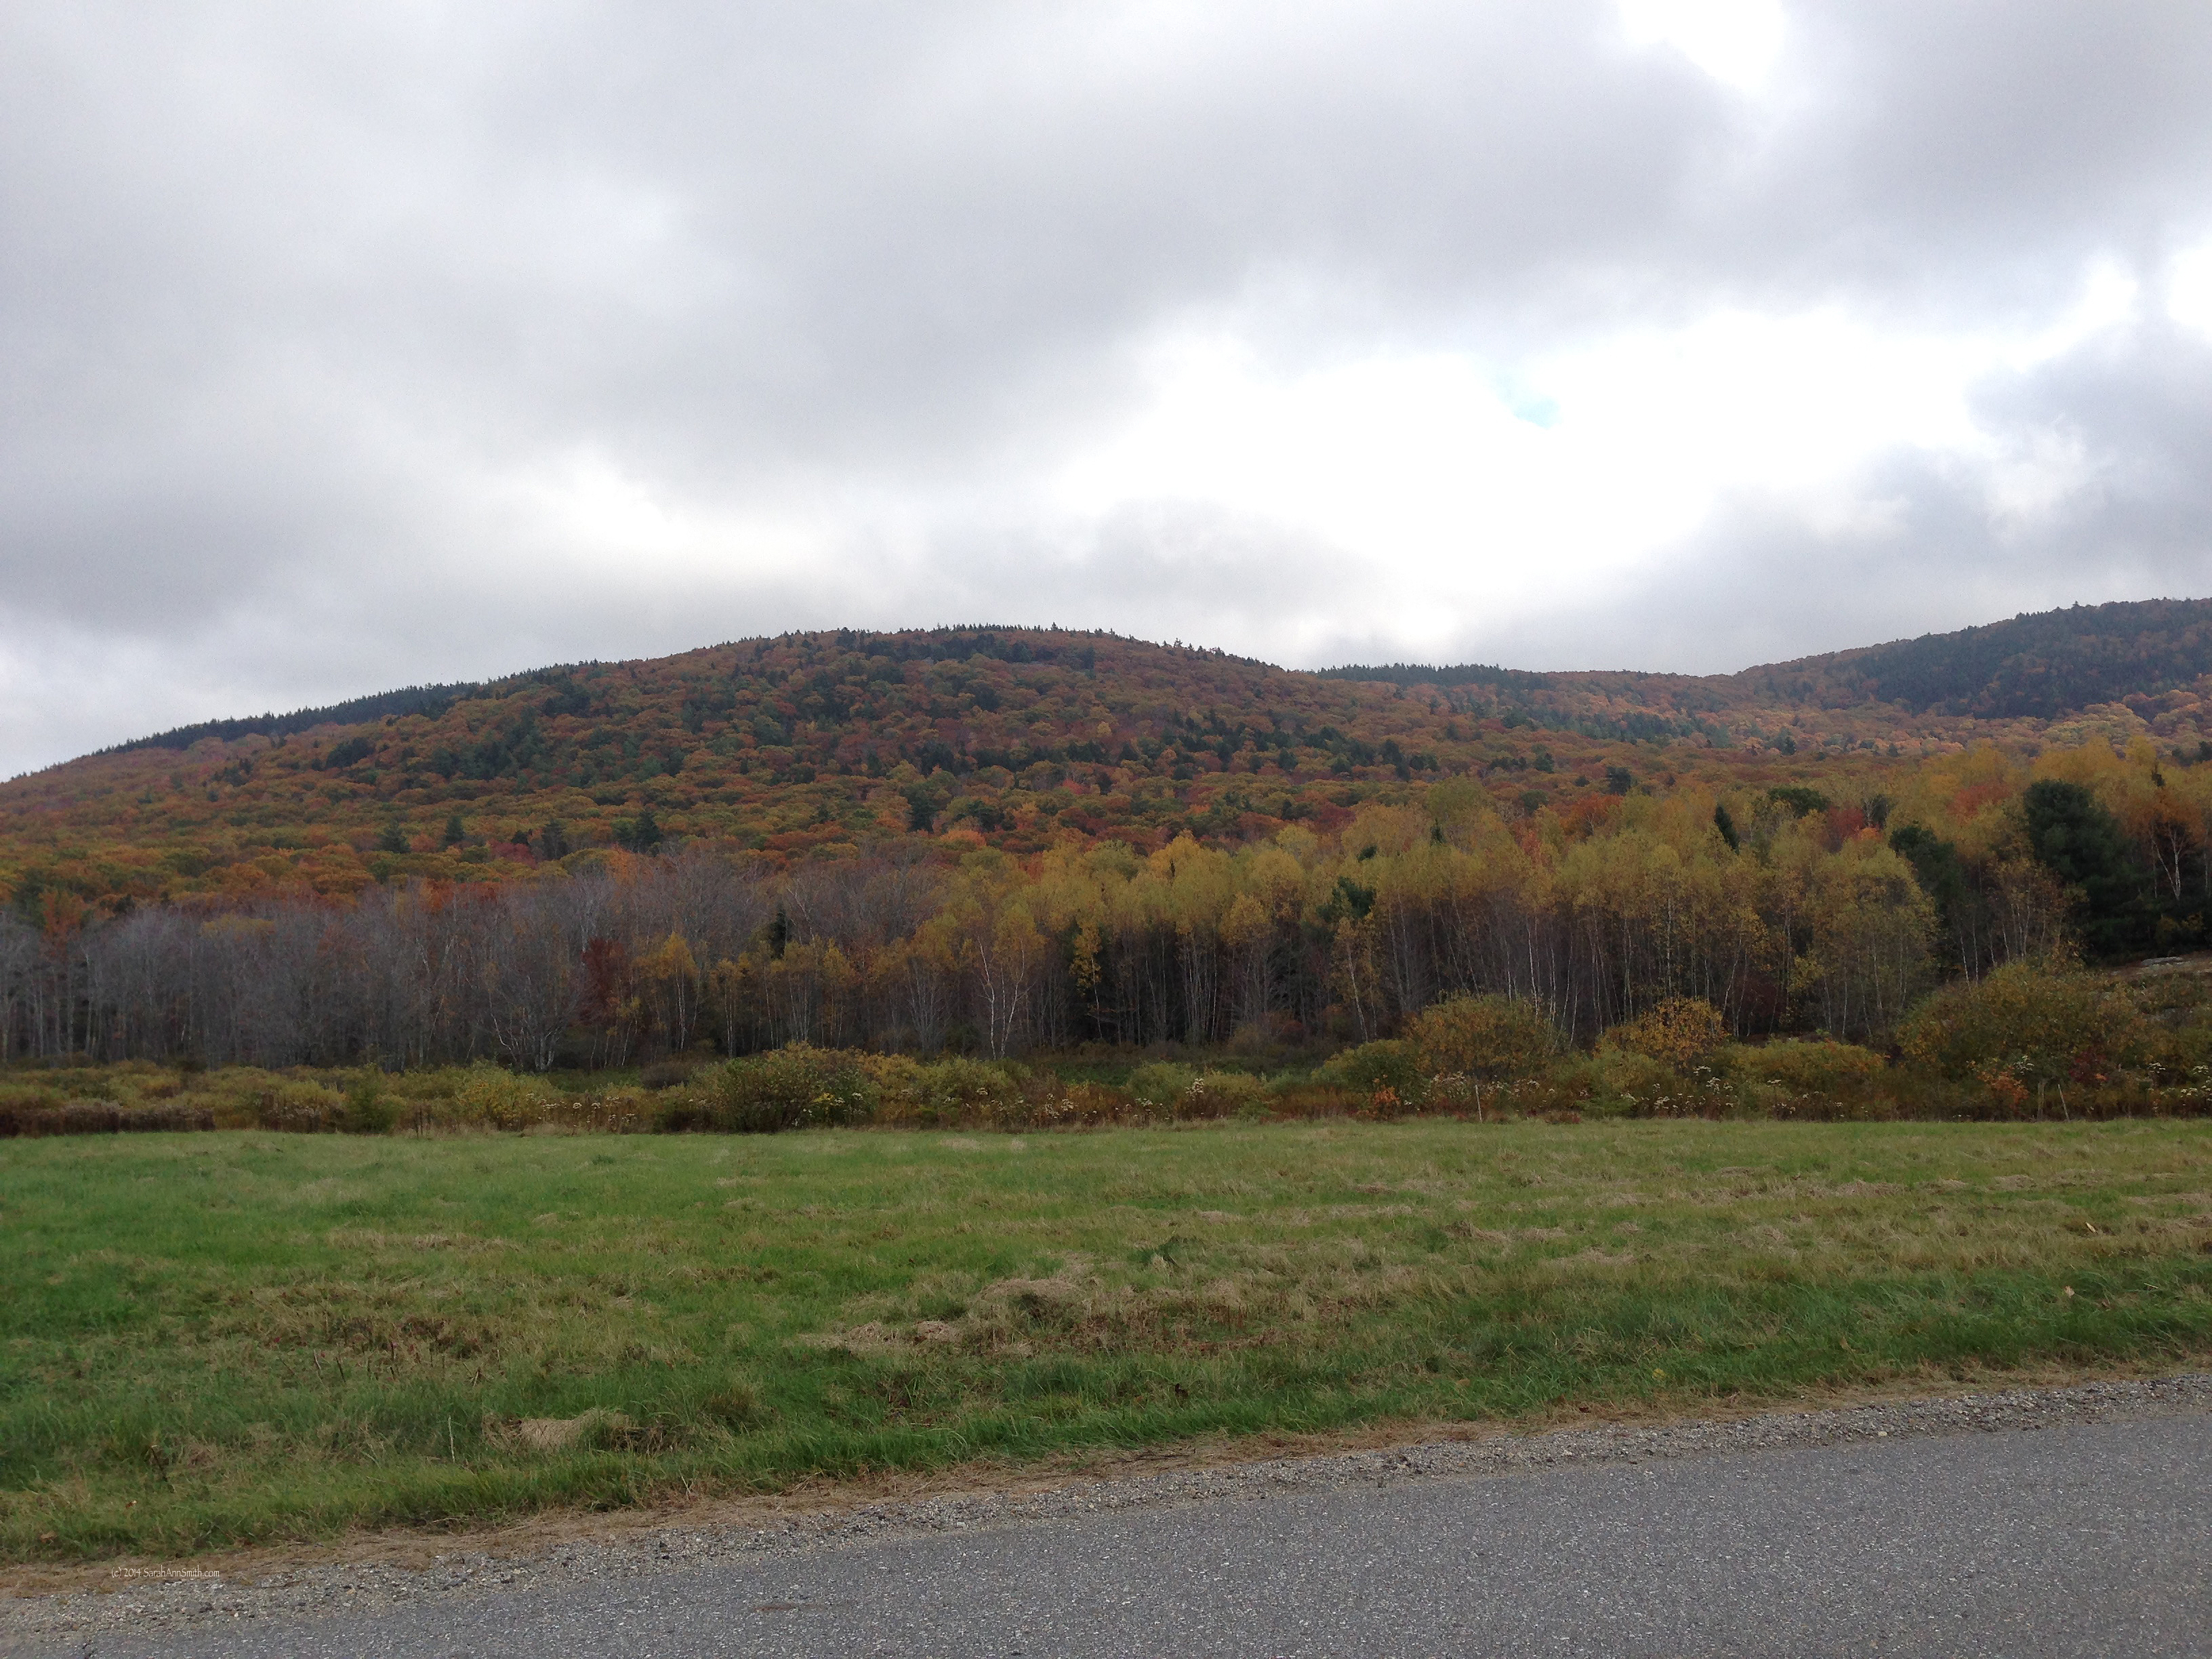 From Gillette Road in south Hope, Maine. Photo (c) Sarah Ann Smith